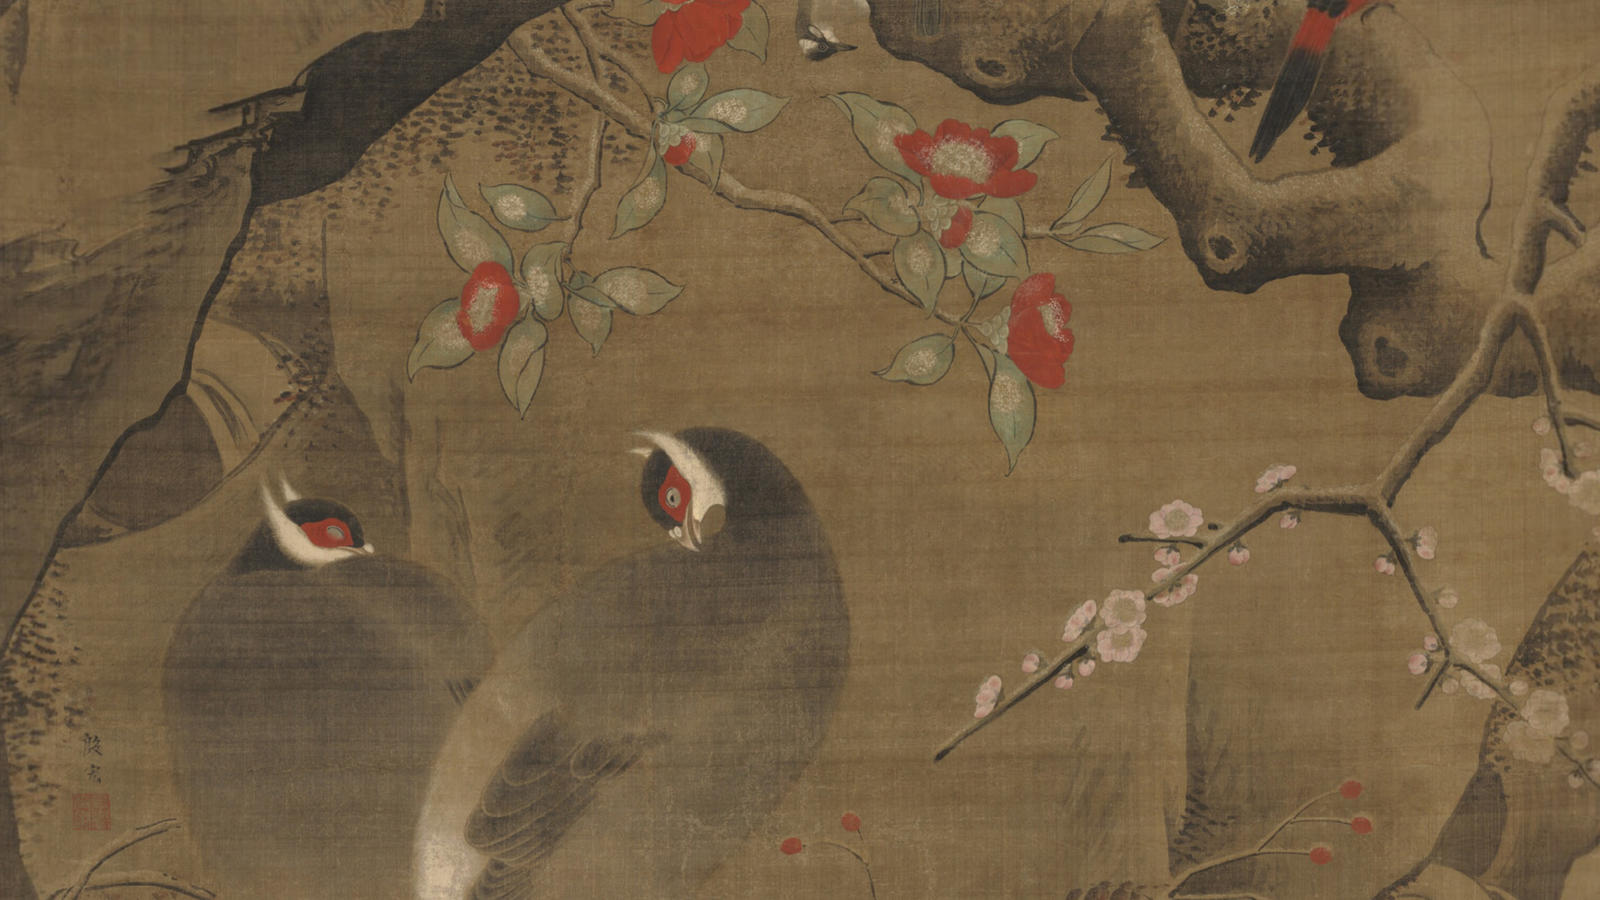 Yin Hong, Birds and Flowers of Early Spring (detail)